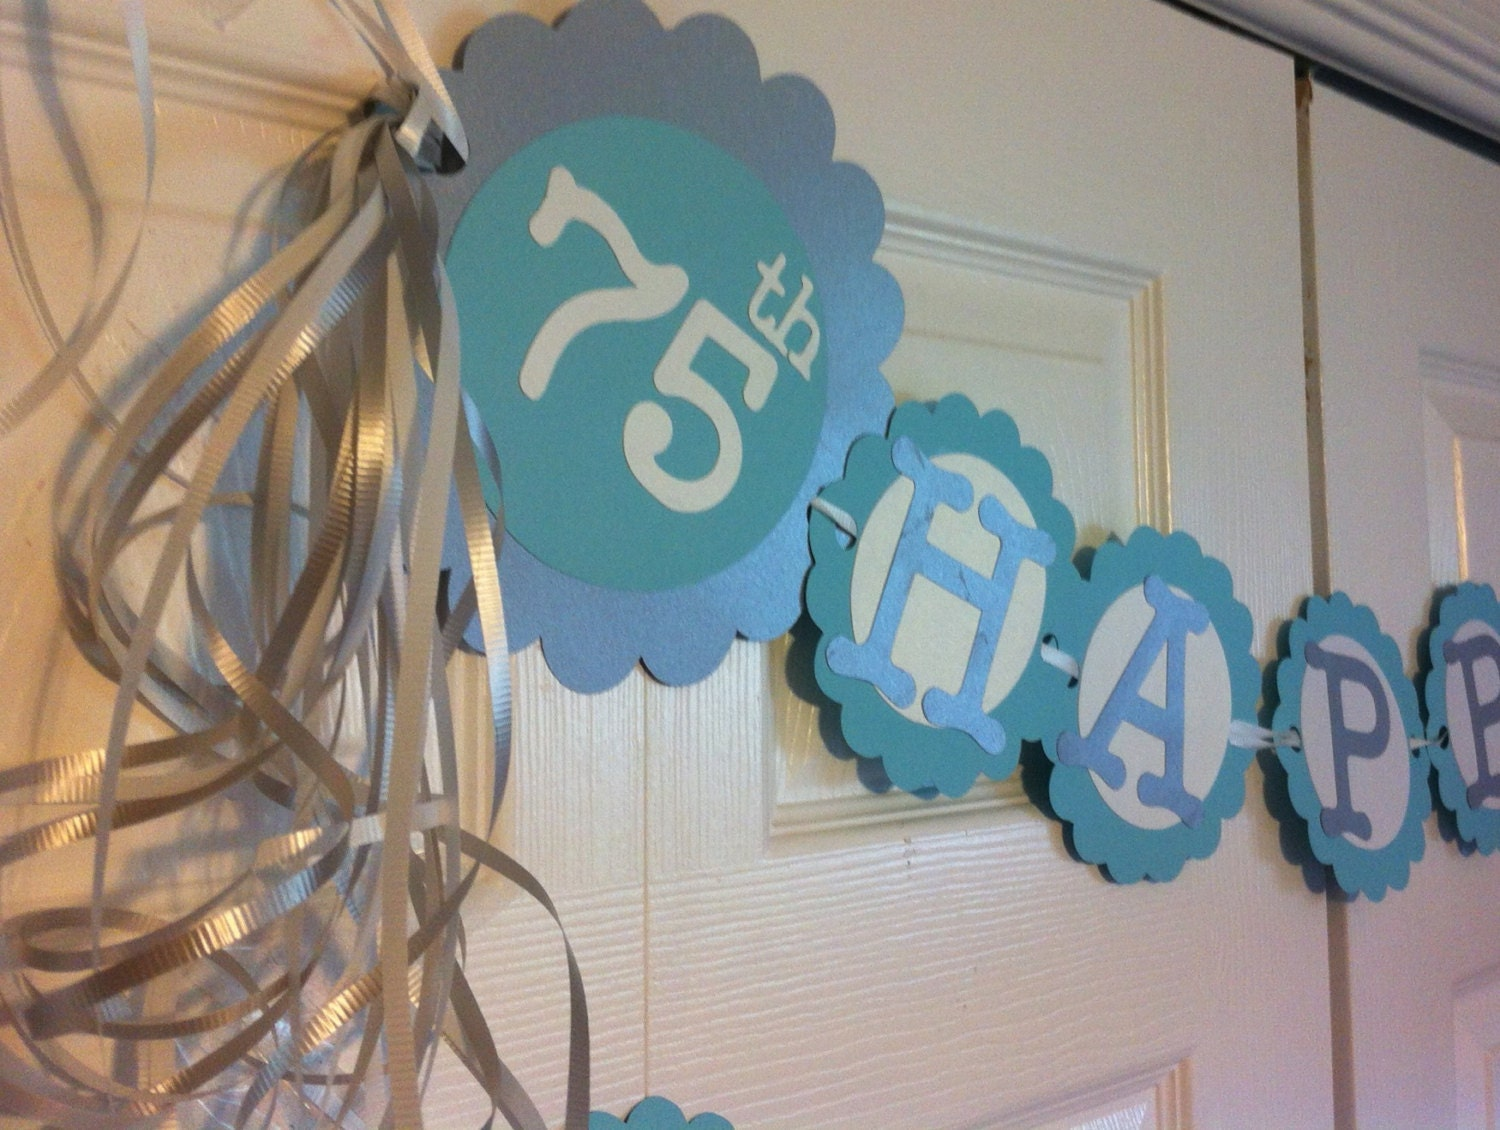 75th Birthday Decorations Personalization Available